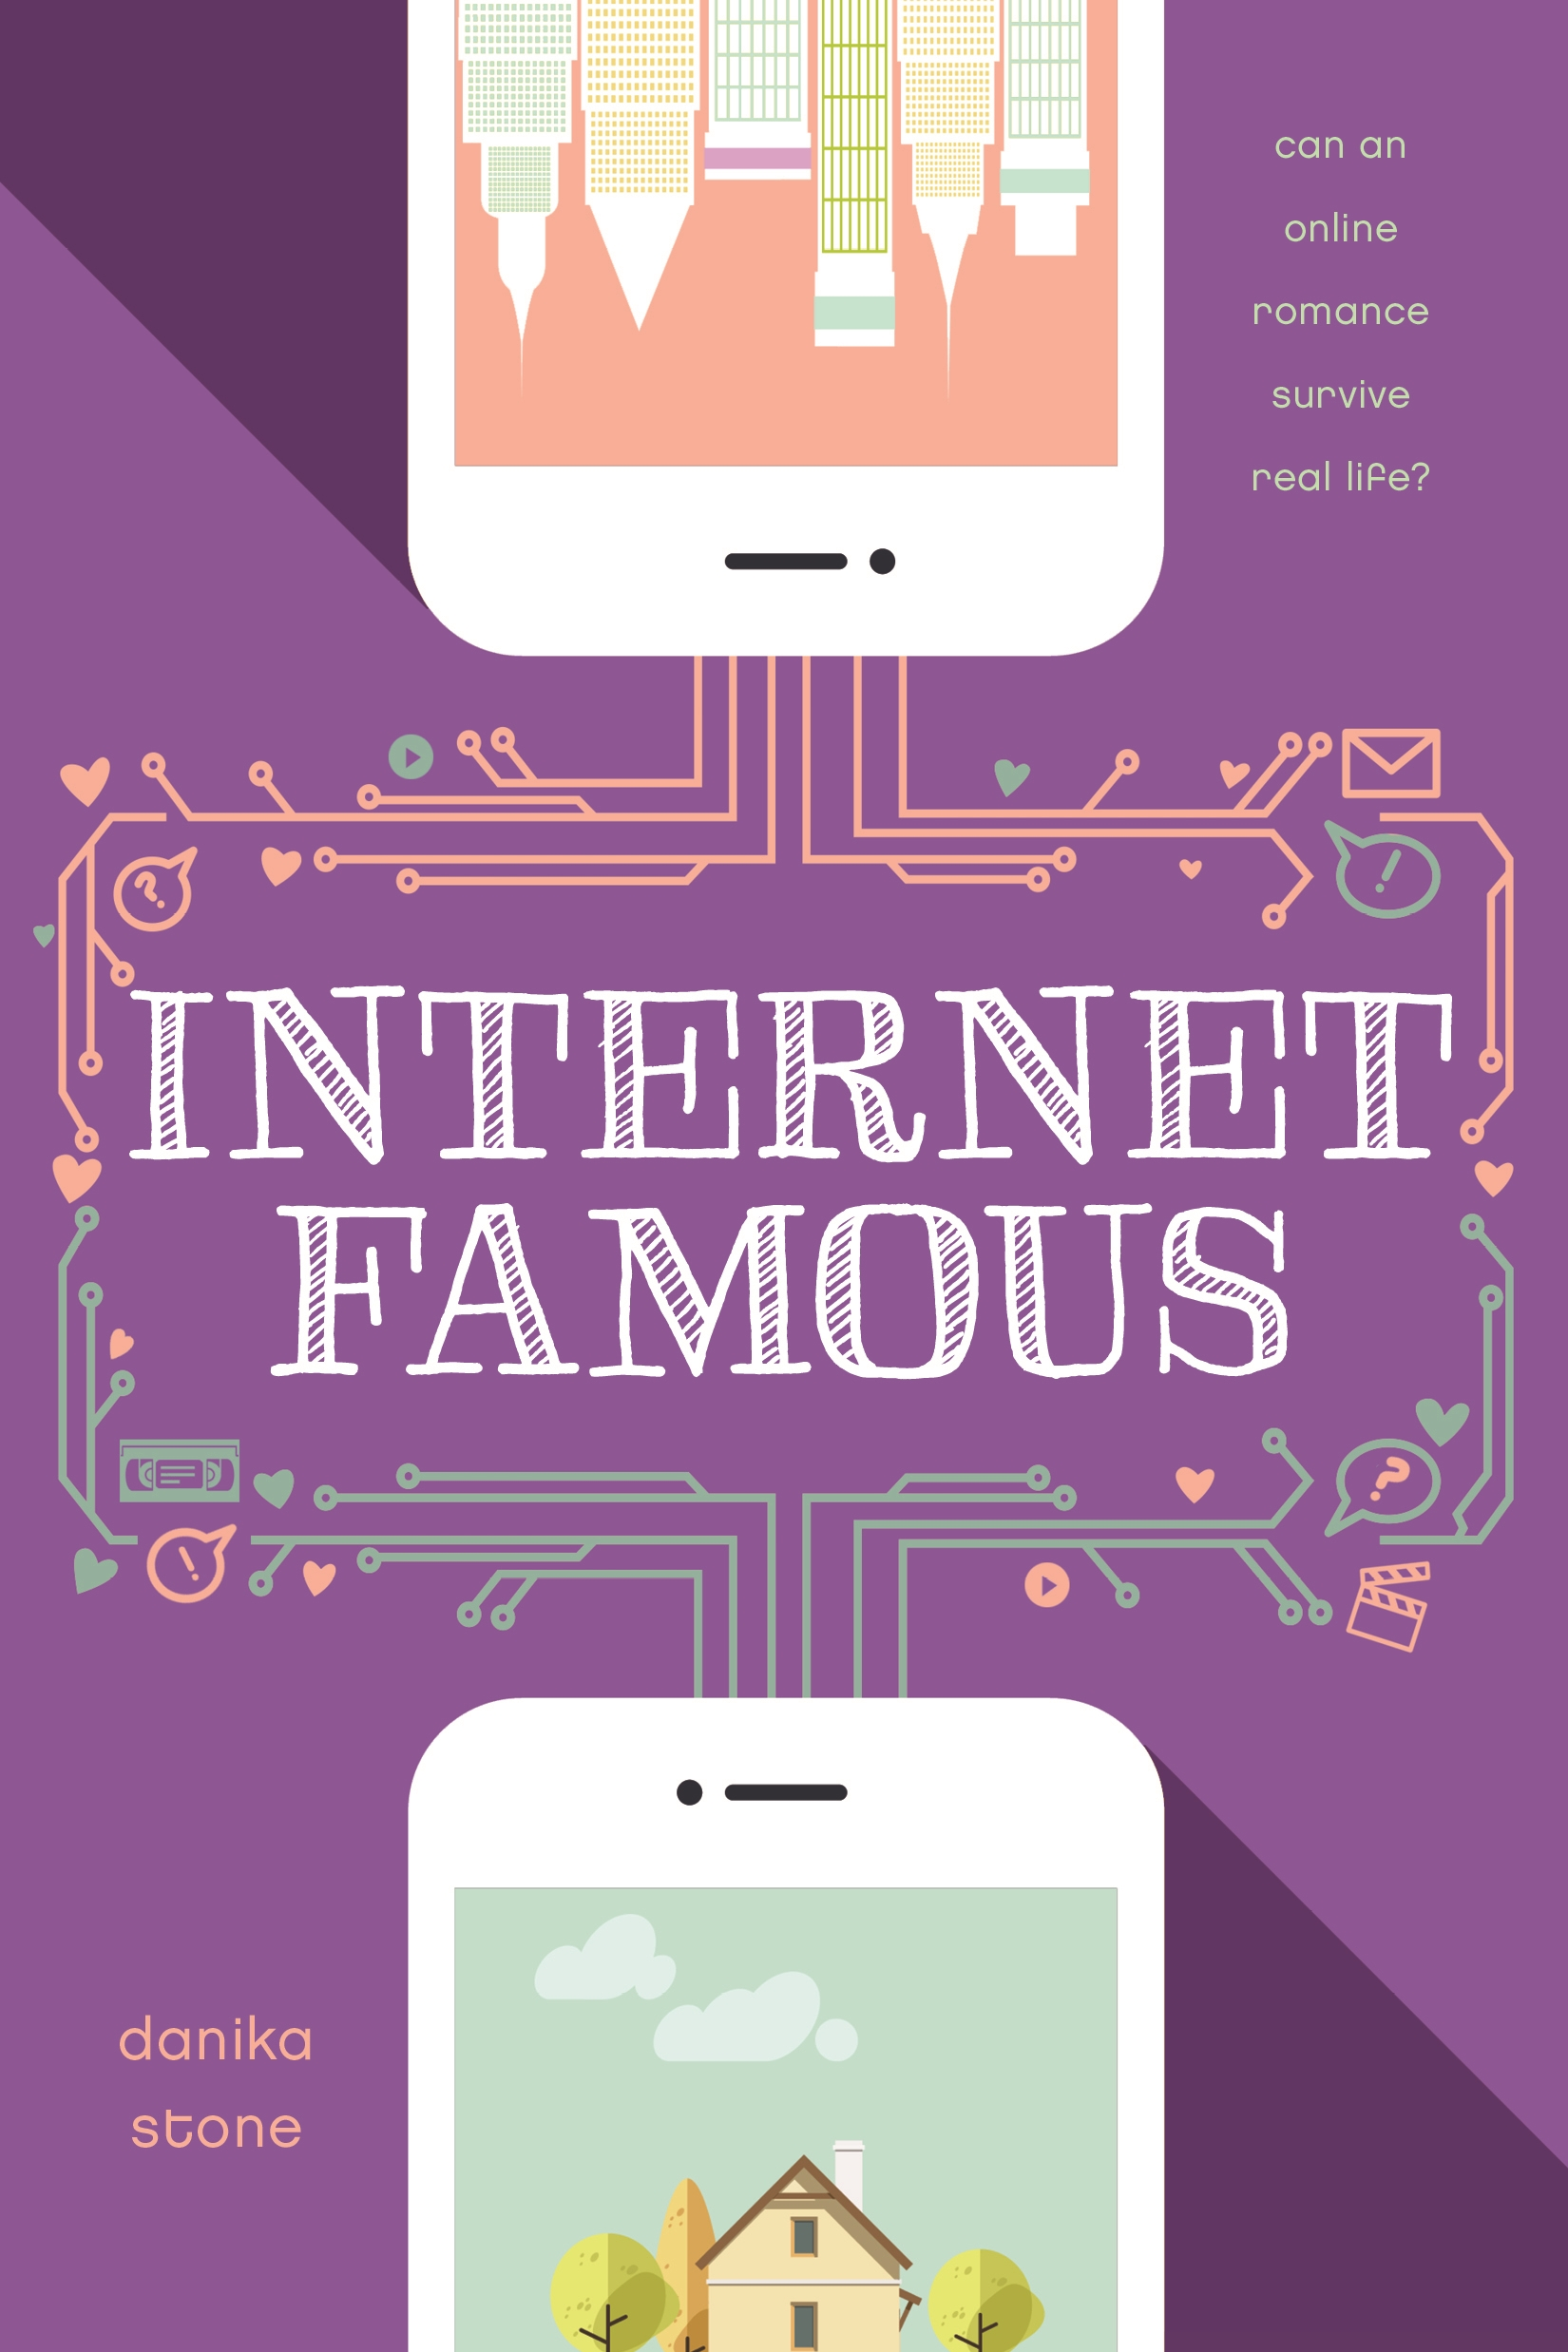 Internet Famous by Danika Stone